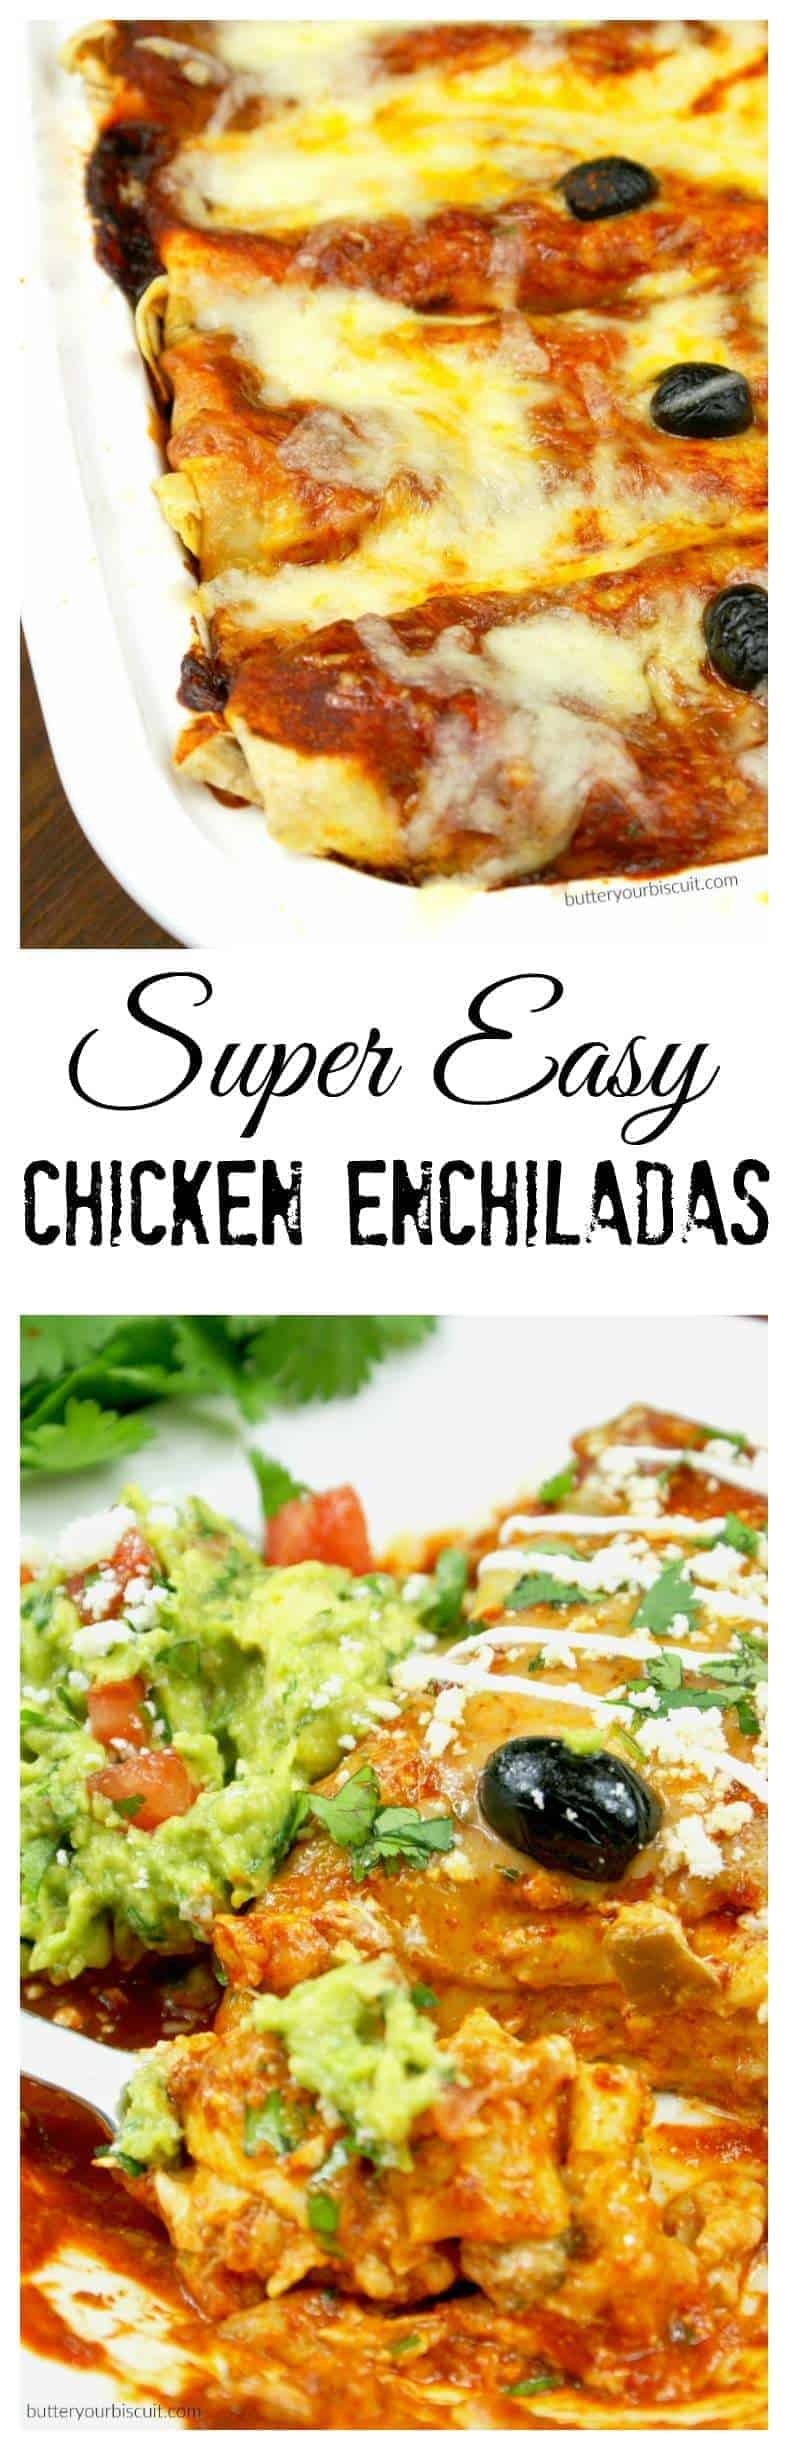 super-easy-chicken-enchiladas-lp-2